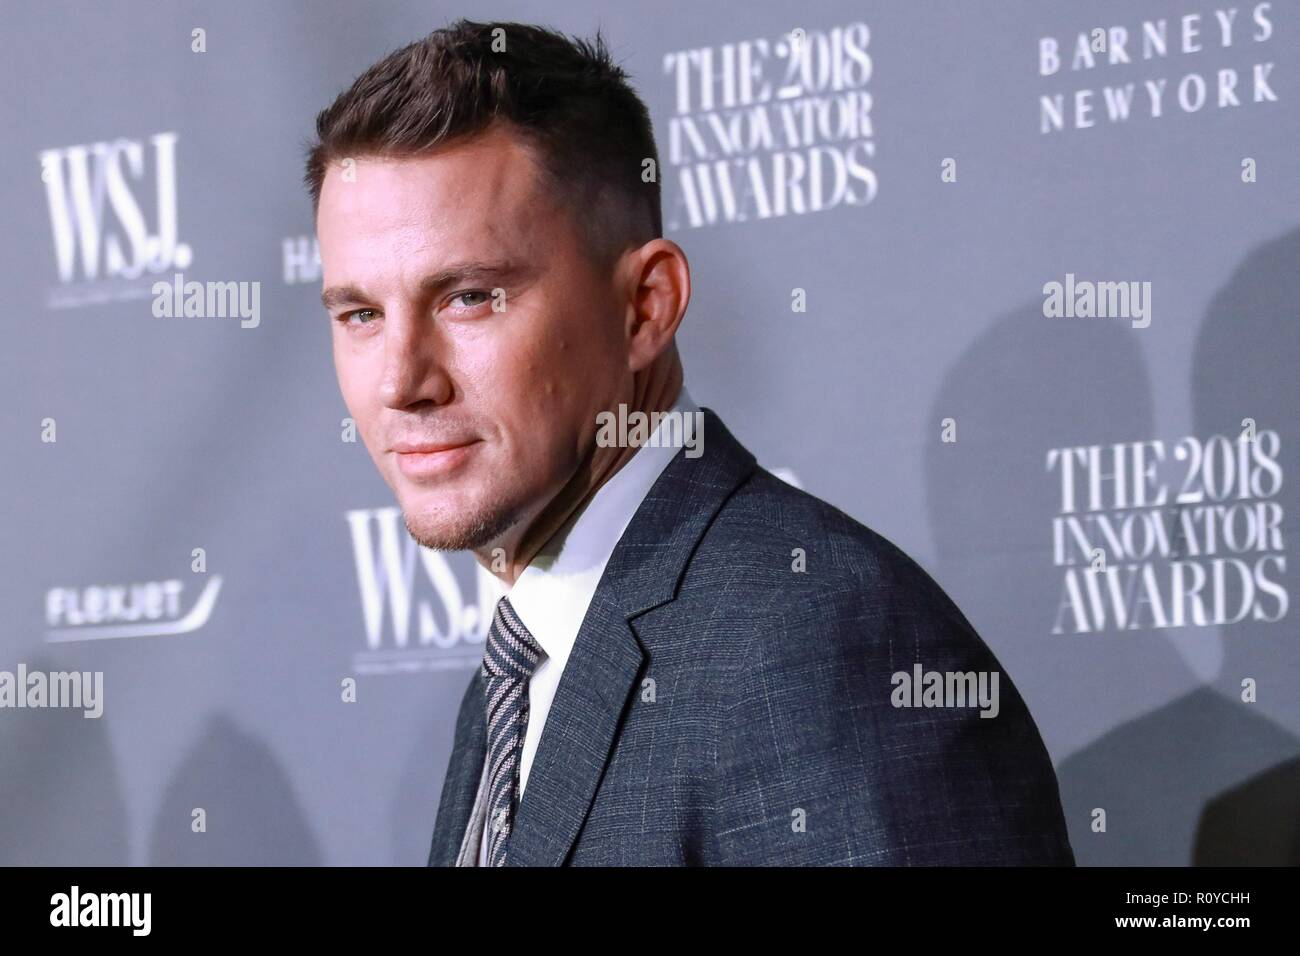 New York, NY, USA. 7 Nov, 2018. Channing Tatum in der Ankunftshalle für Wall Street Journal WSJ Magazine Innovator Awards 2018, Museum für Moderne Kunst (MoMA), New York, NY, 7. November 2018. Credit: Jason Mendez/Everett Collection/Alamy leben Nachrichten Stockbild